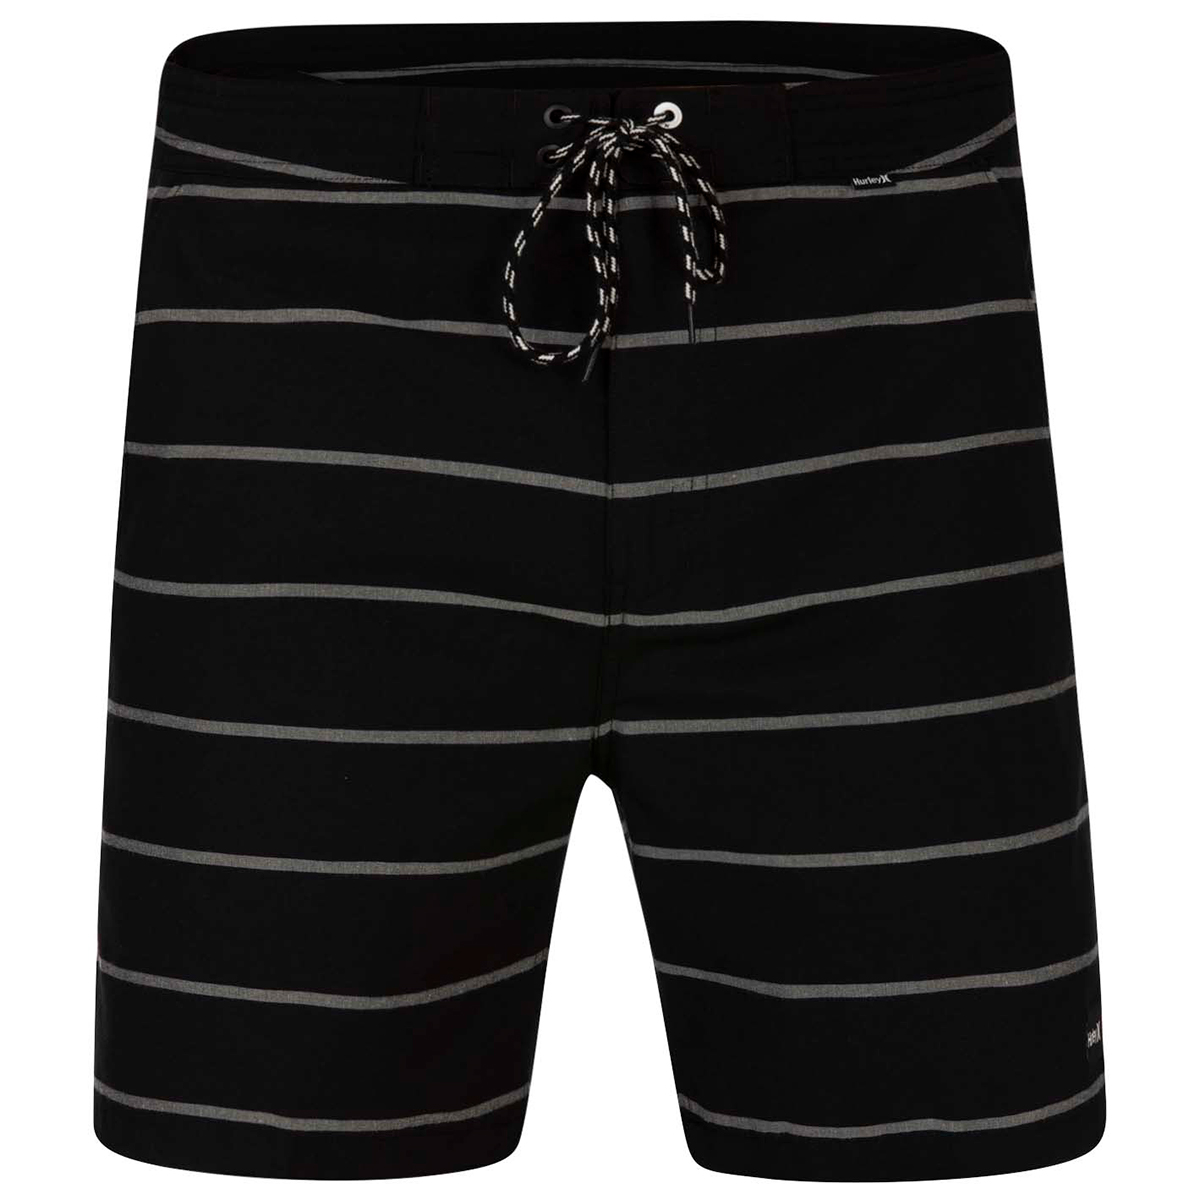 Hurley Men's Harvey Beachside Shorts - Black, 36